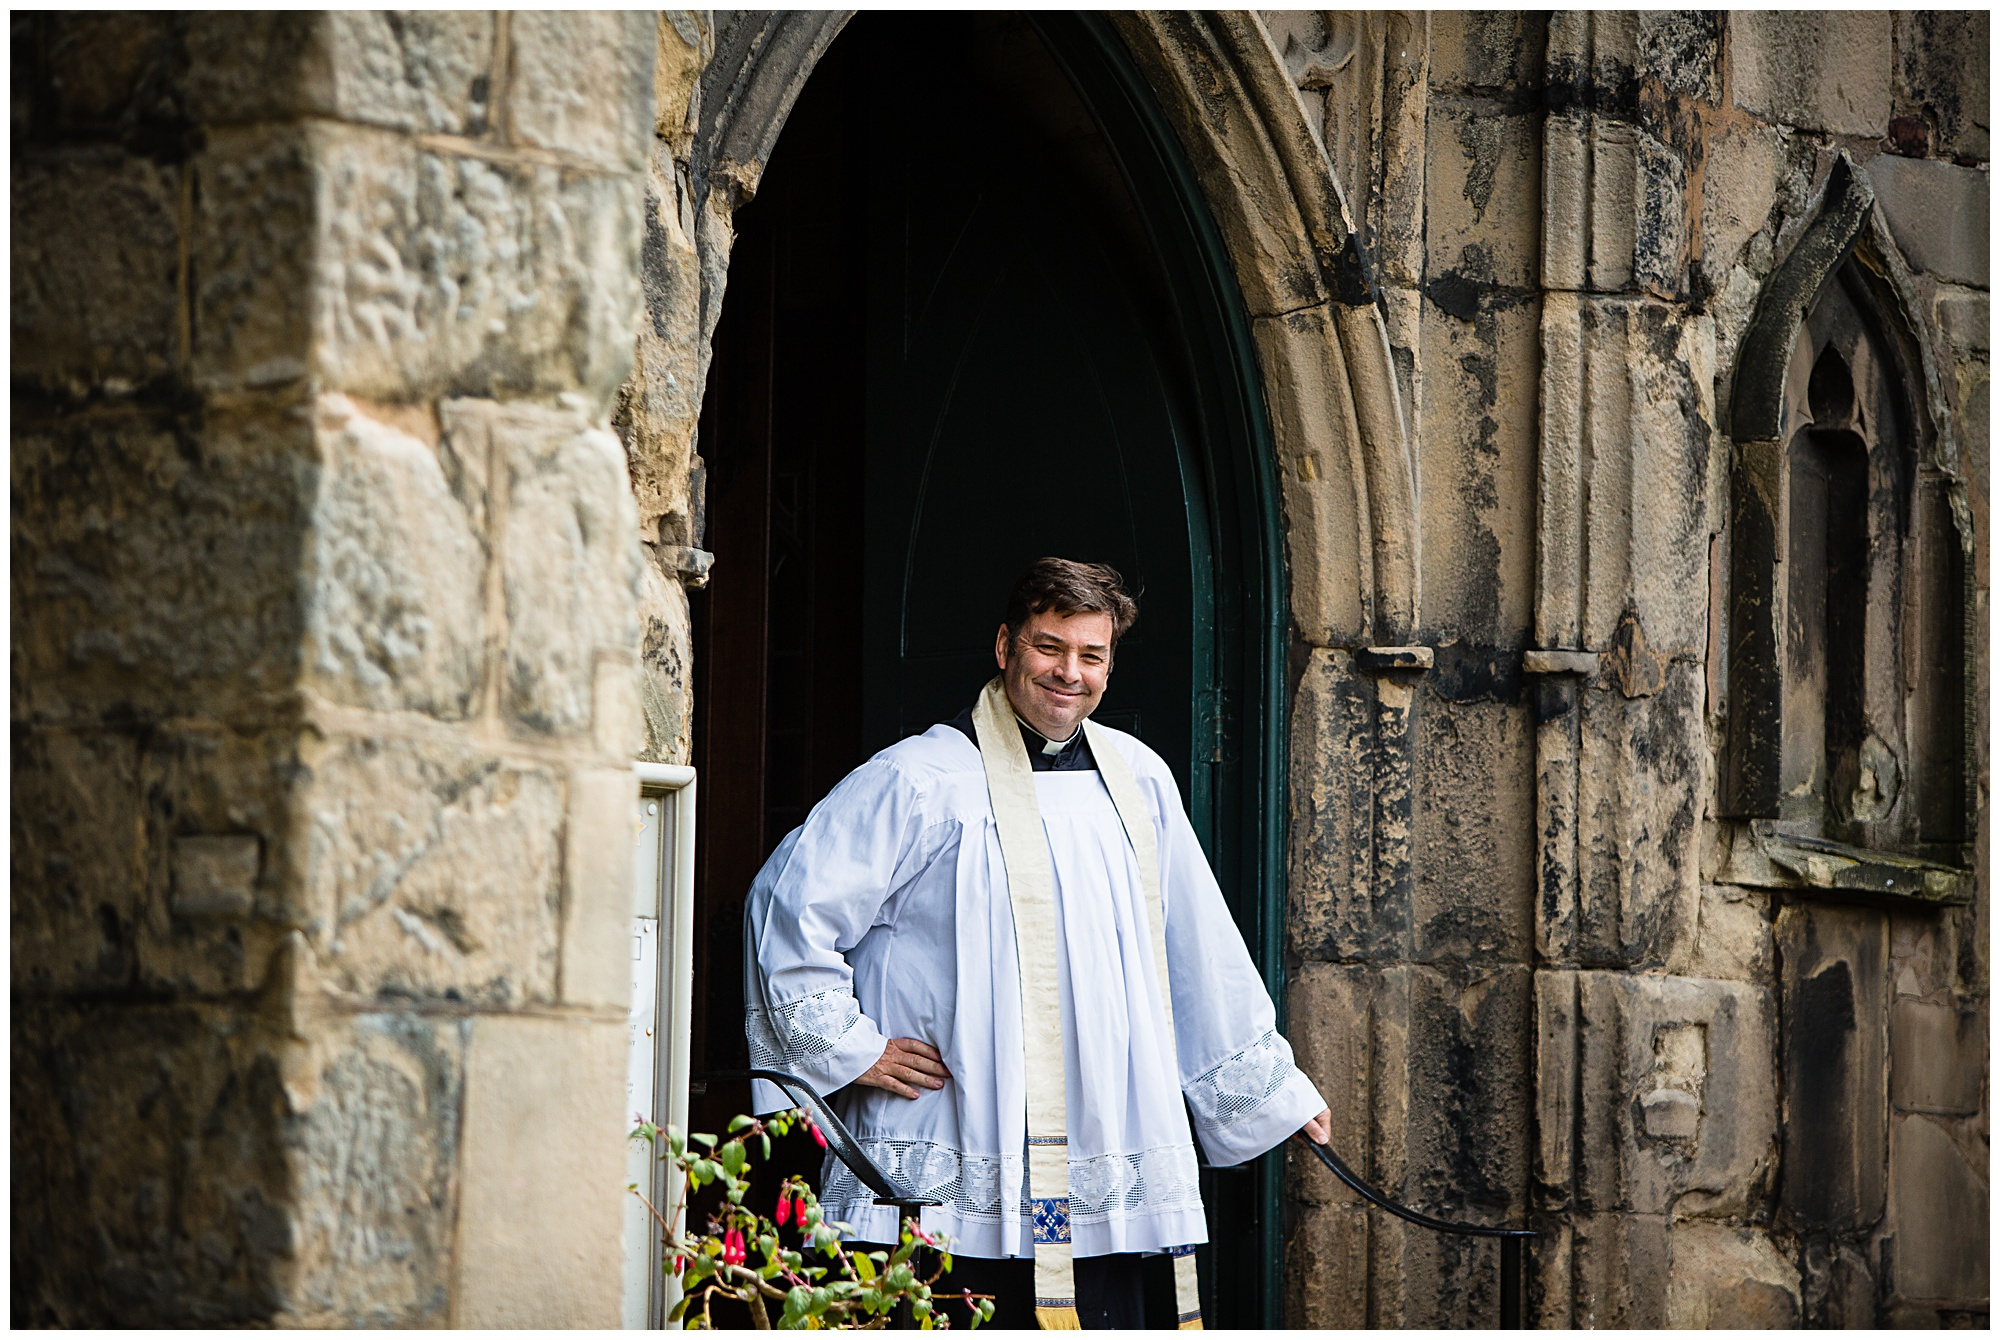 vicar waiting at the door looking very eccited to see the bride